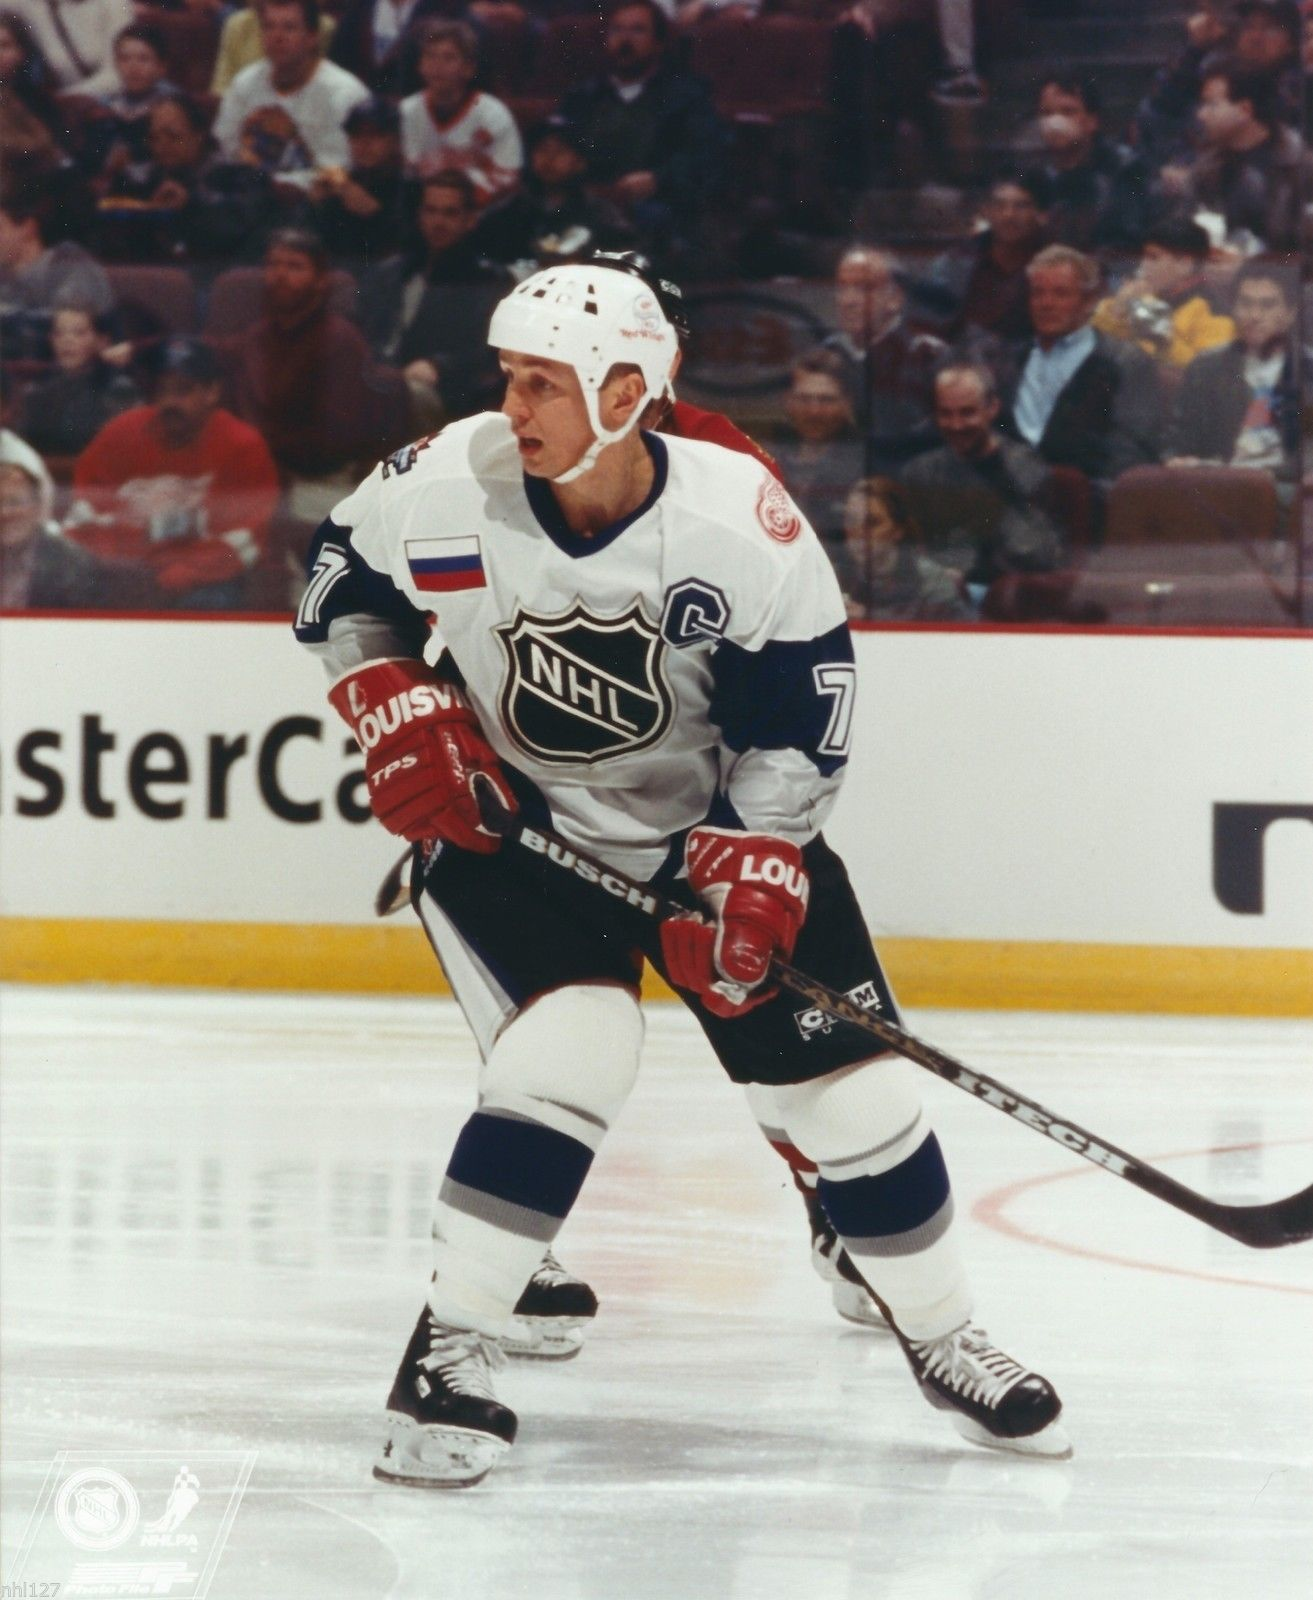 1998 Igor Larionov NHL All Star Game.JPG